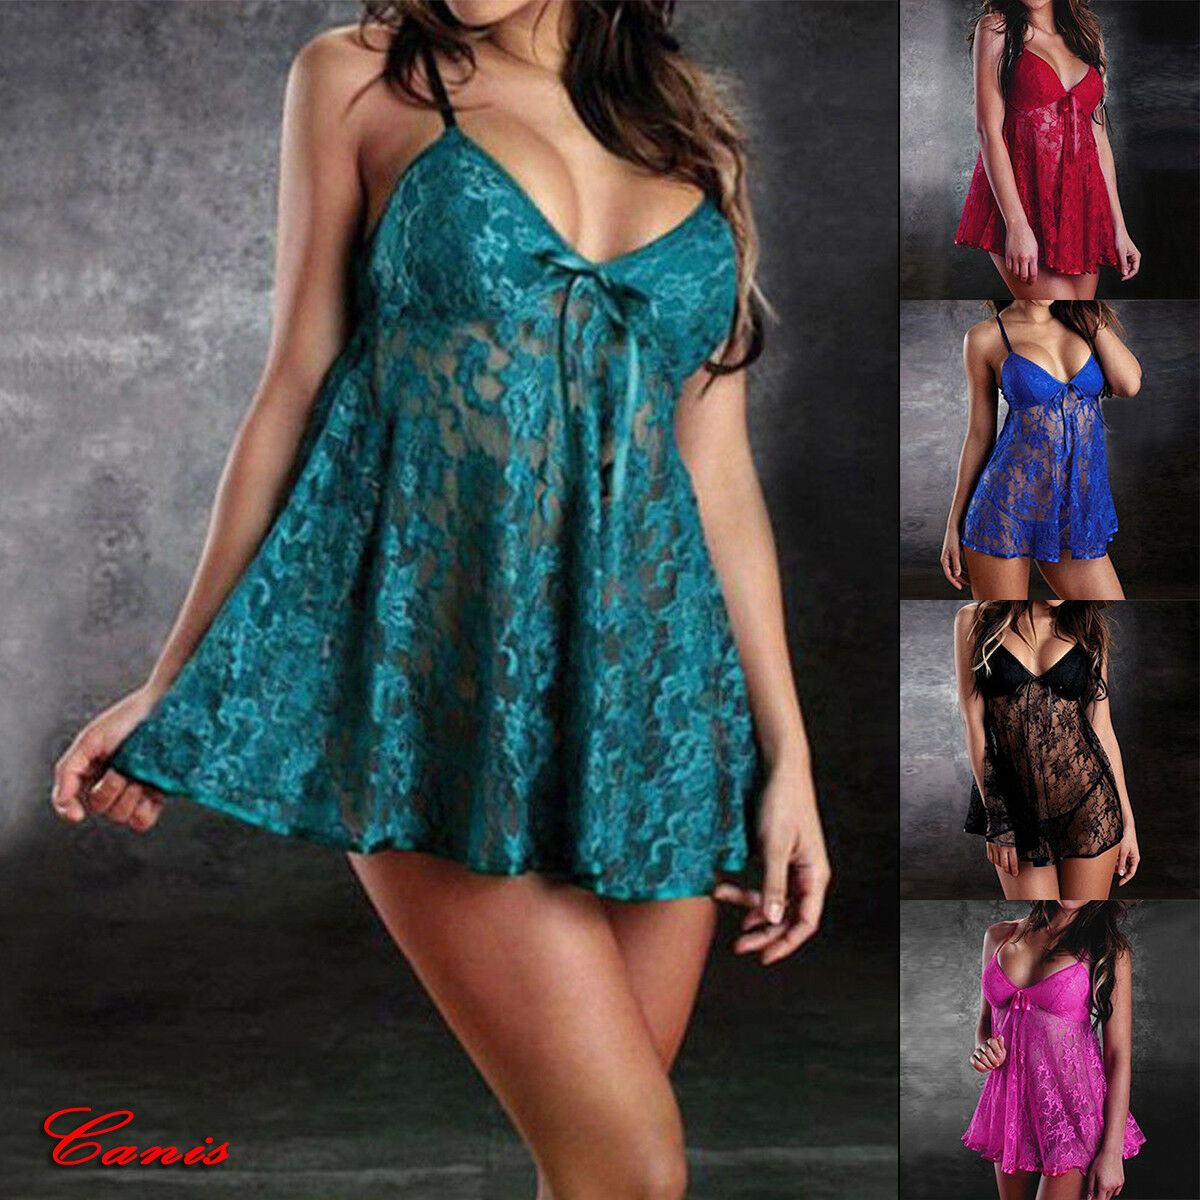 Womens <font><b>Sexy</b></font> Teddy <font><b>Lingerie</b></font> Babydoll <font><b>Push</b></font> <font><b>Up</b></font> Lace Babysuit G-String Nightwear US image